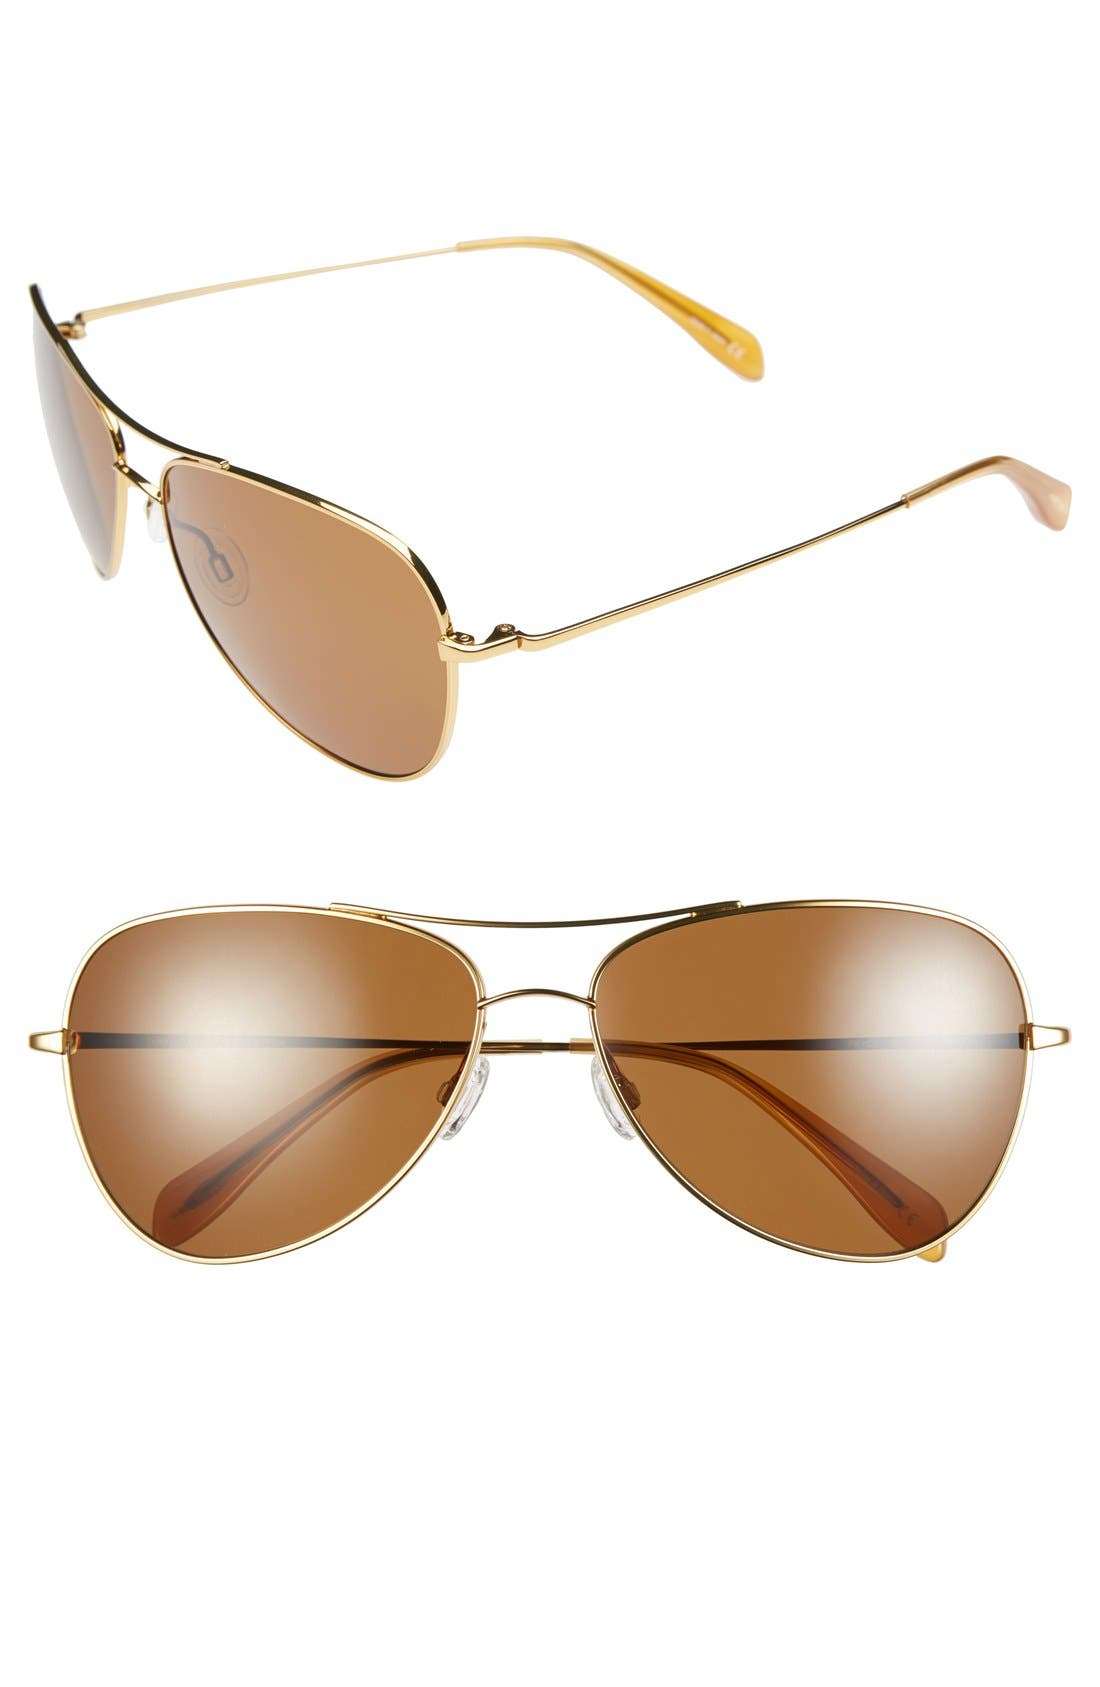 Main Image - Oliver Peoples for AERIN 'Pryce' 61mm Aviator Sunglasses